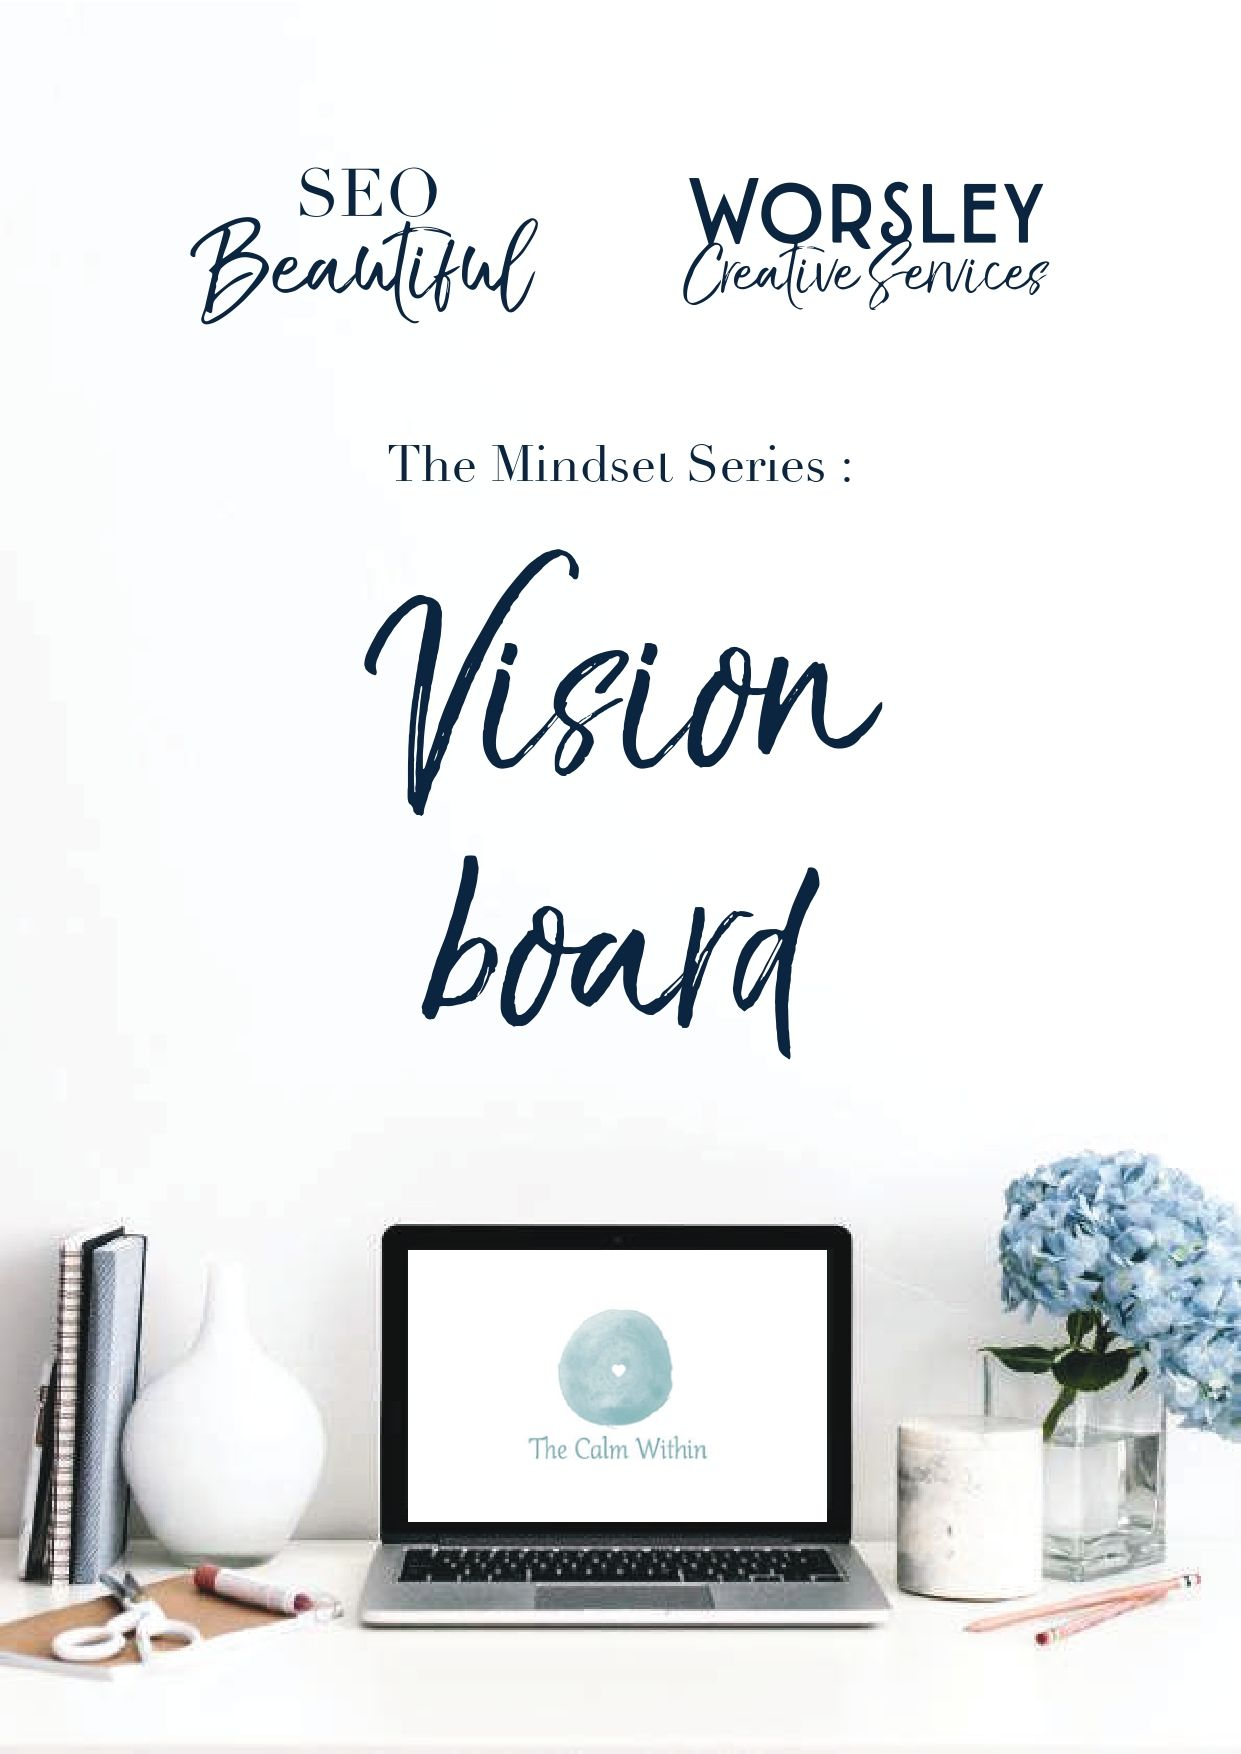 SEO Beautiful Vision Board Cover